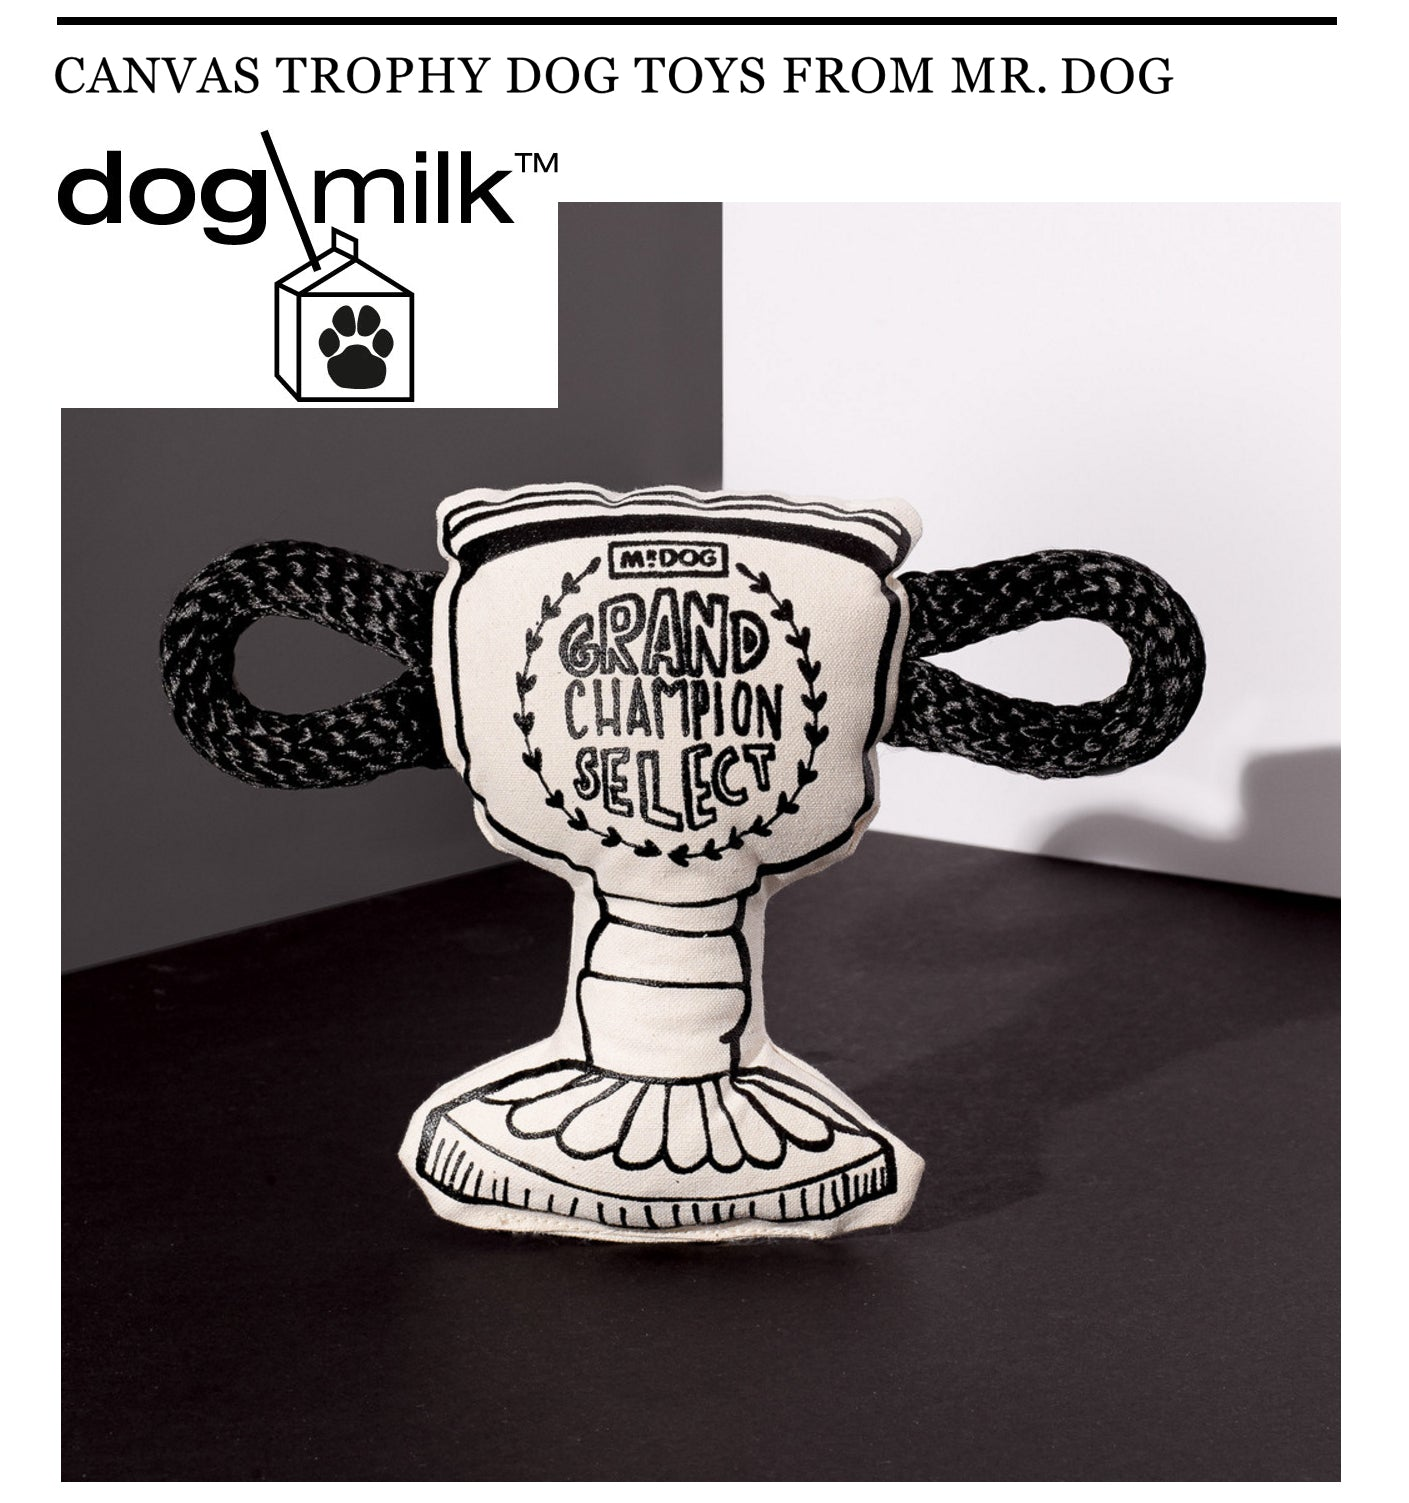 Dog Milk Mr Dog Trophy Toys